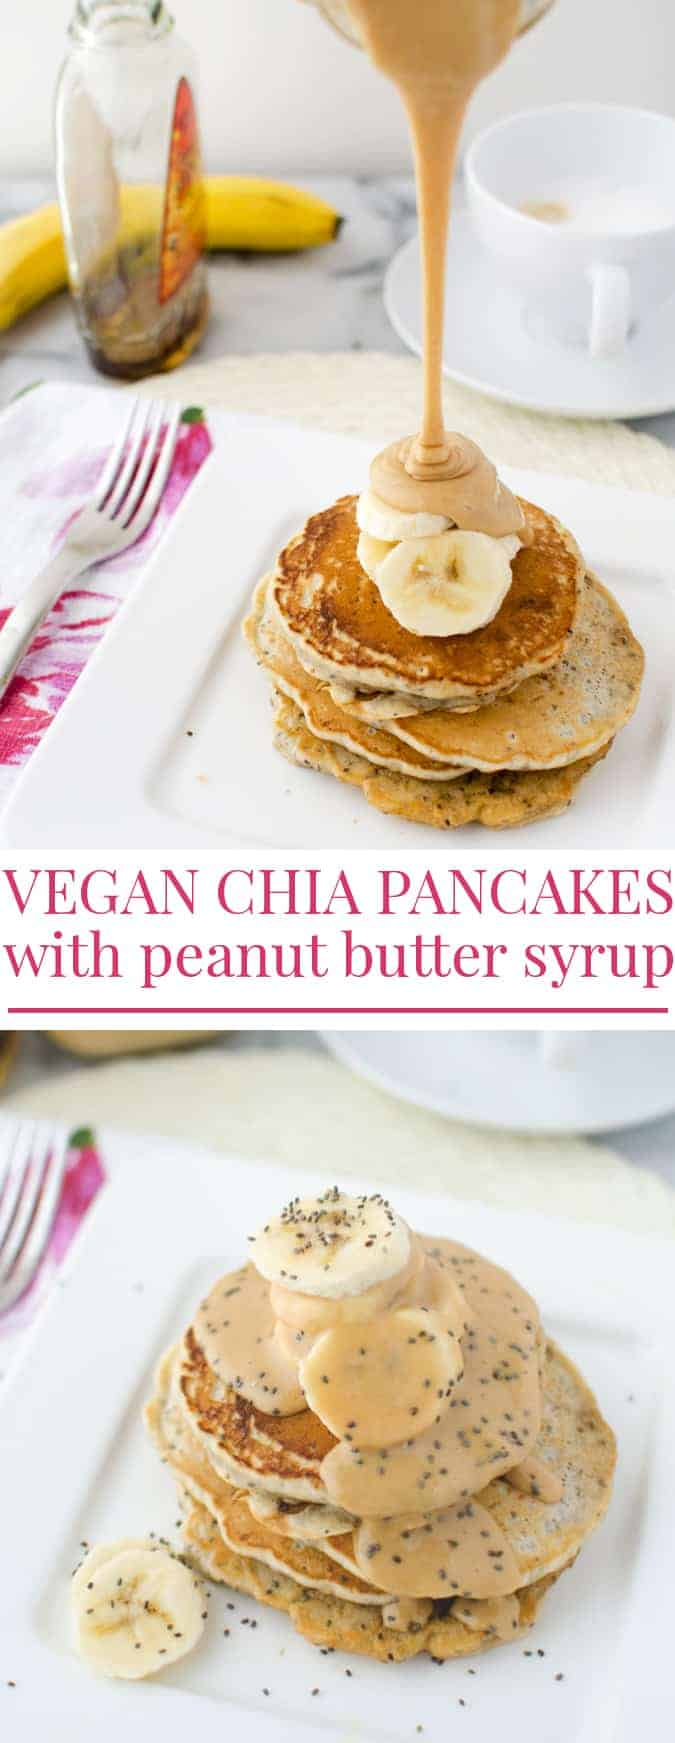 Vegan chia pancakes topped with velvety, decadent maple-peanut butter syrup and fresh sliced bananas! | www.delishknowledge.com